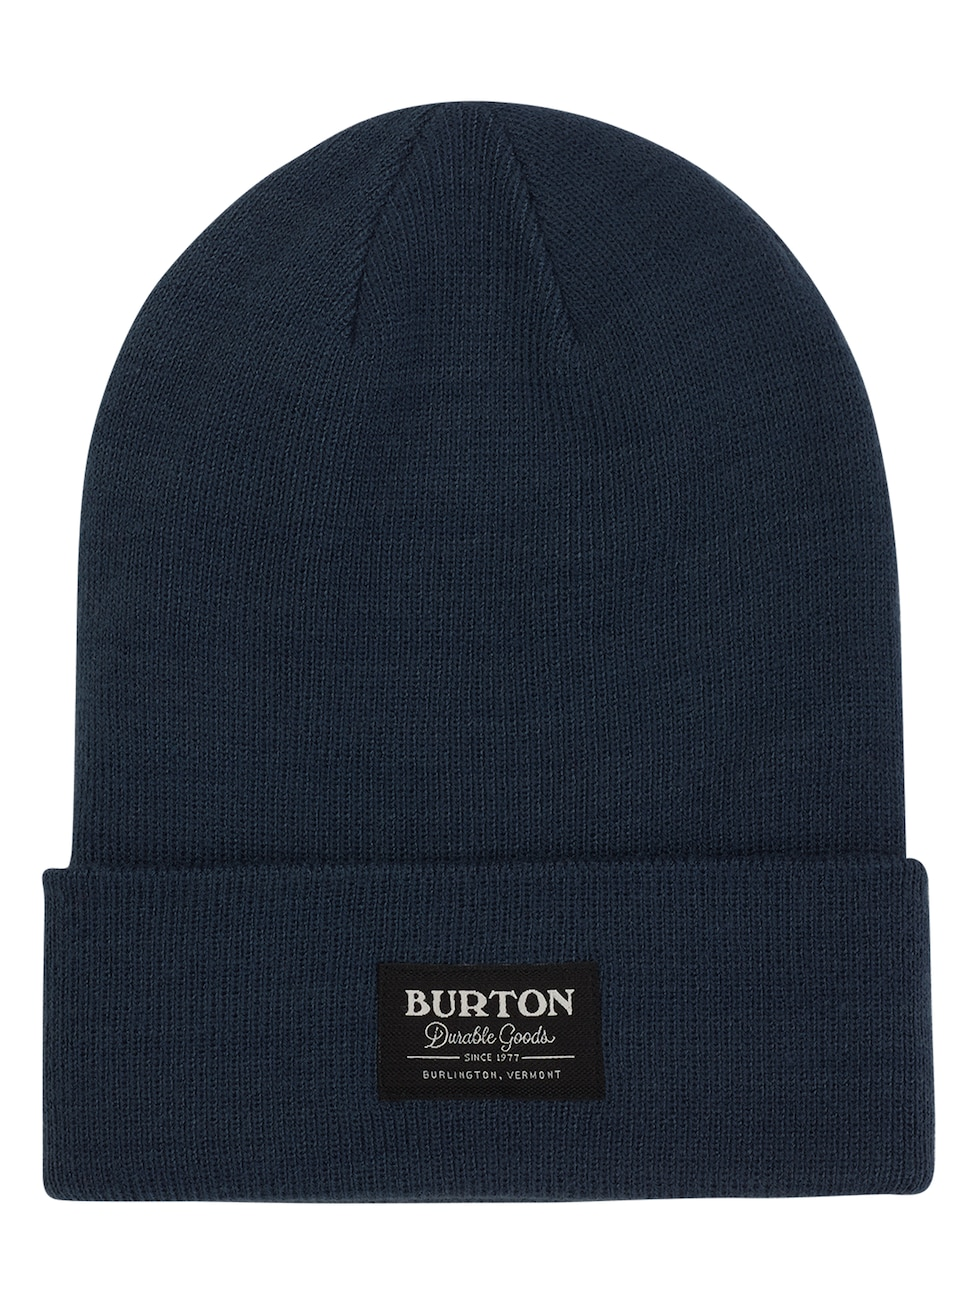 Burton Kactusbunch Tall mössa Dress Blue 20/21